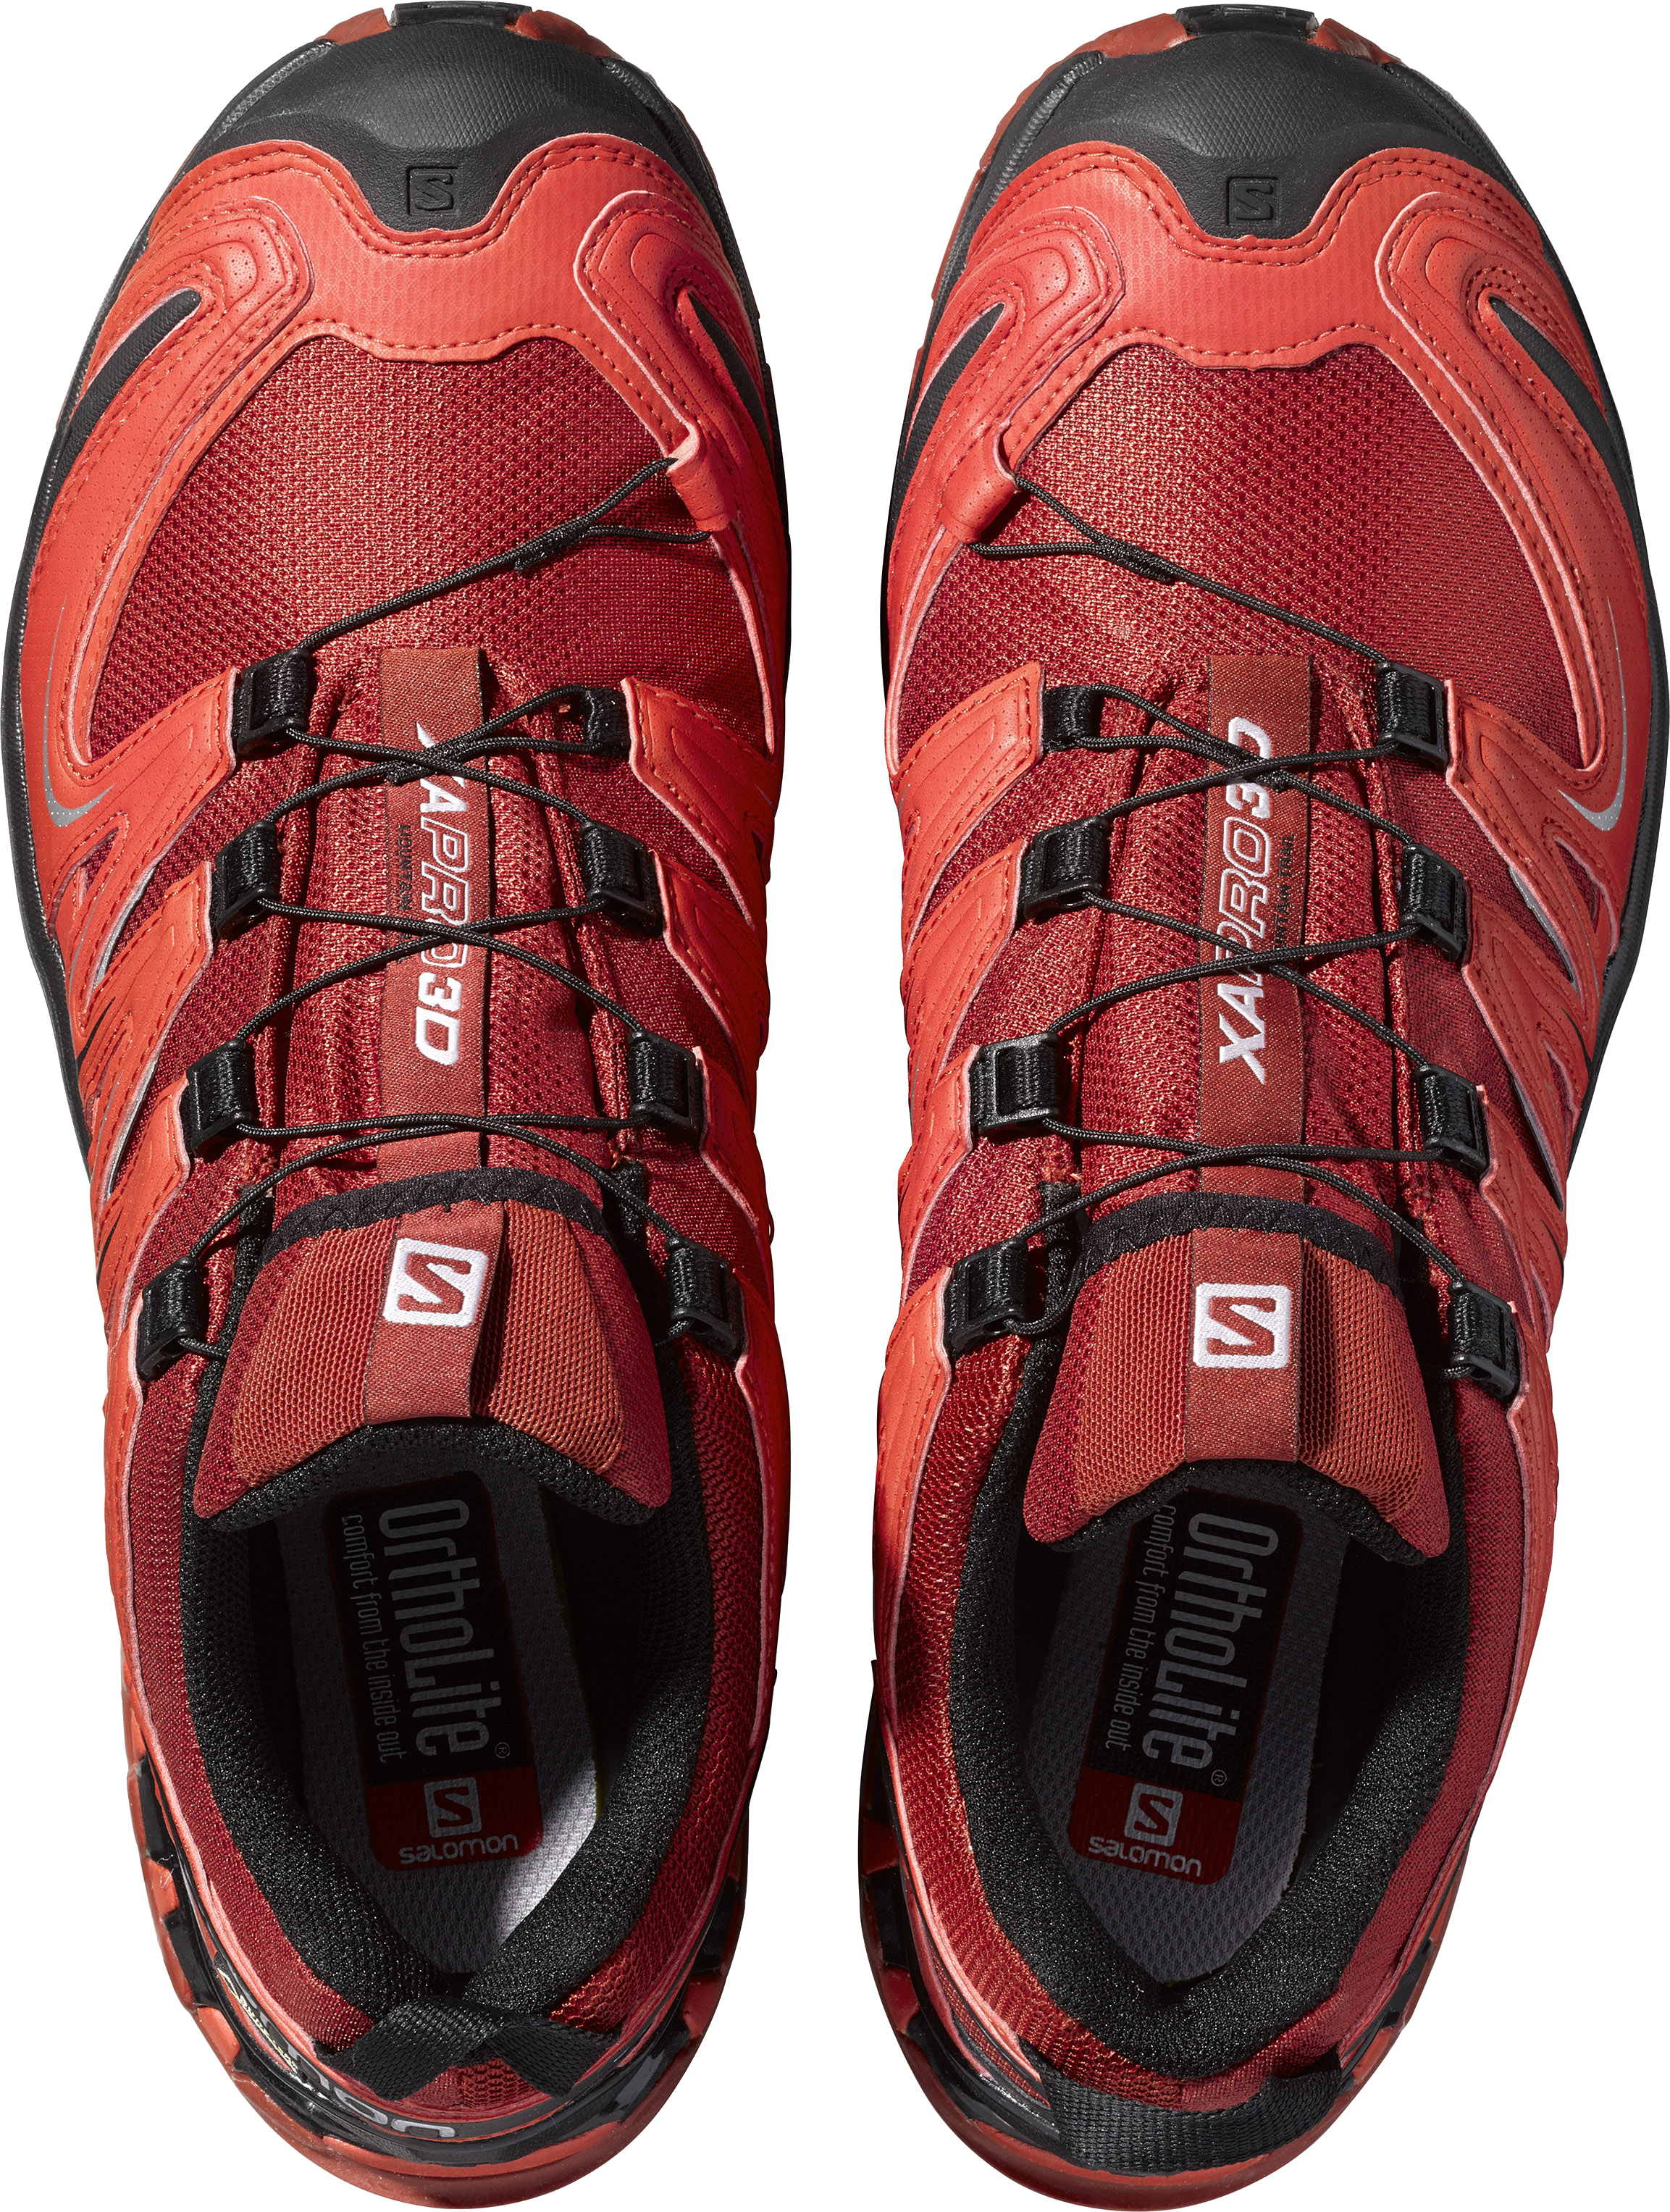 salomon xa pro 3d ultra 2 gtx red diamond